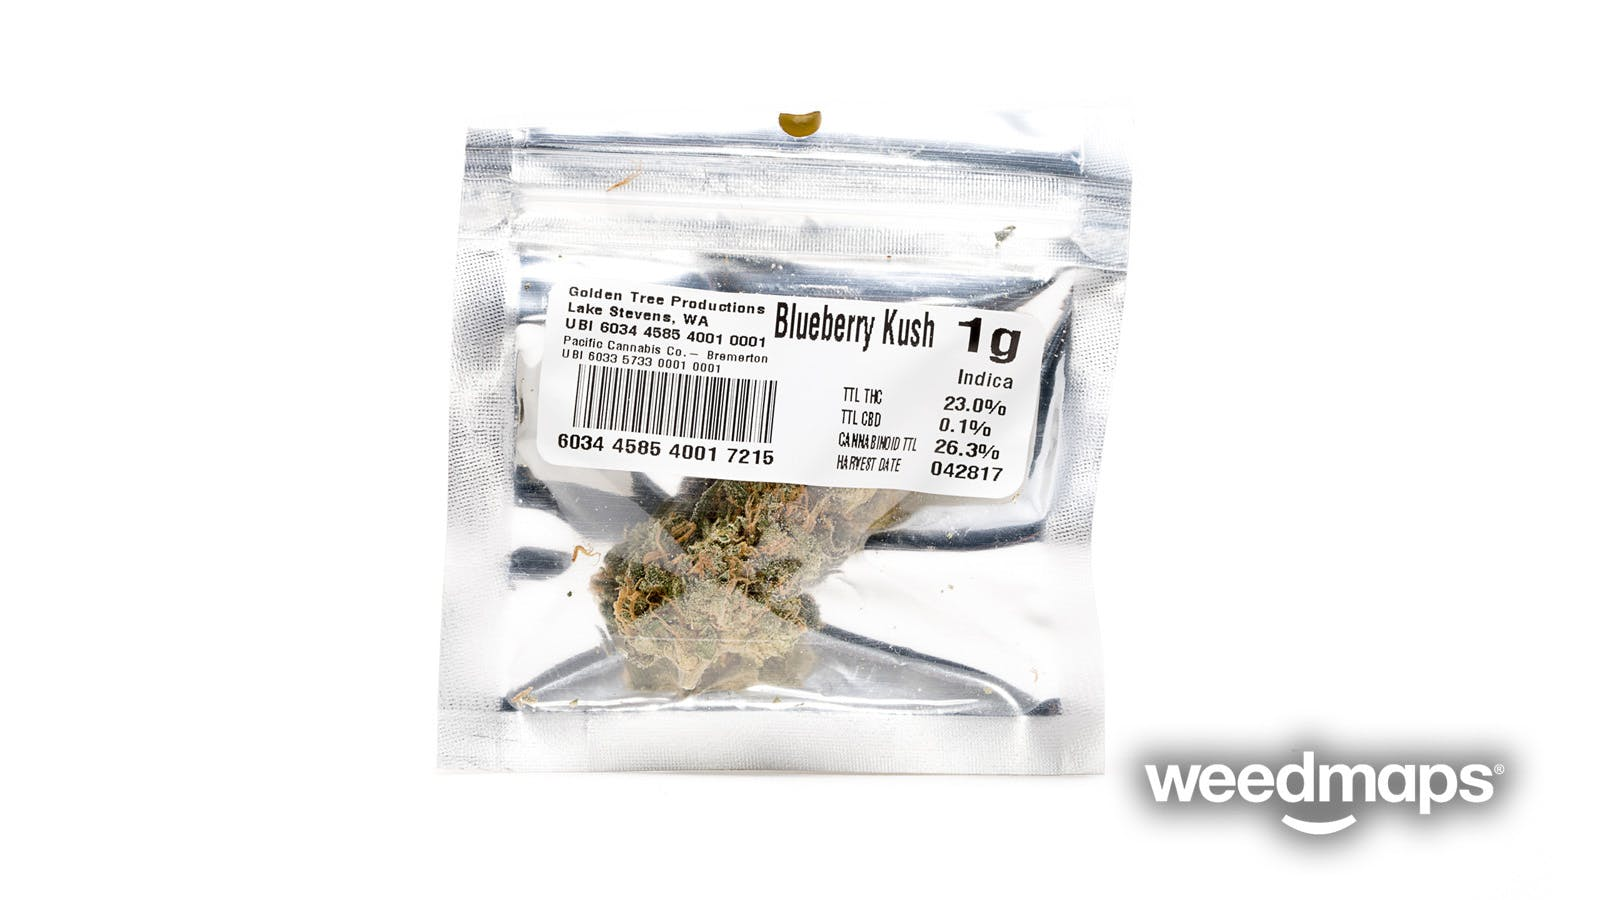 indica-blueberry-kush-by-kettle-river-cannabis-company